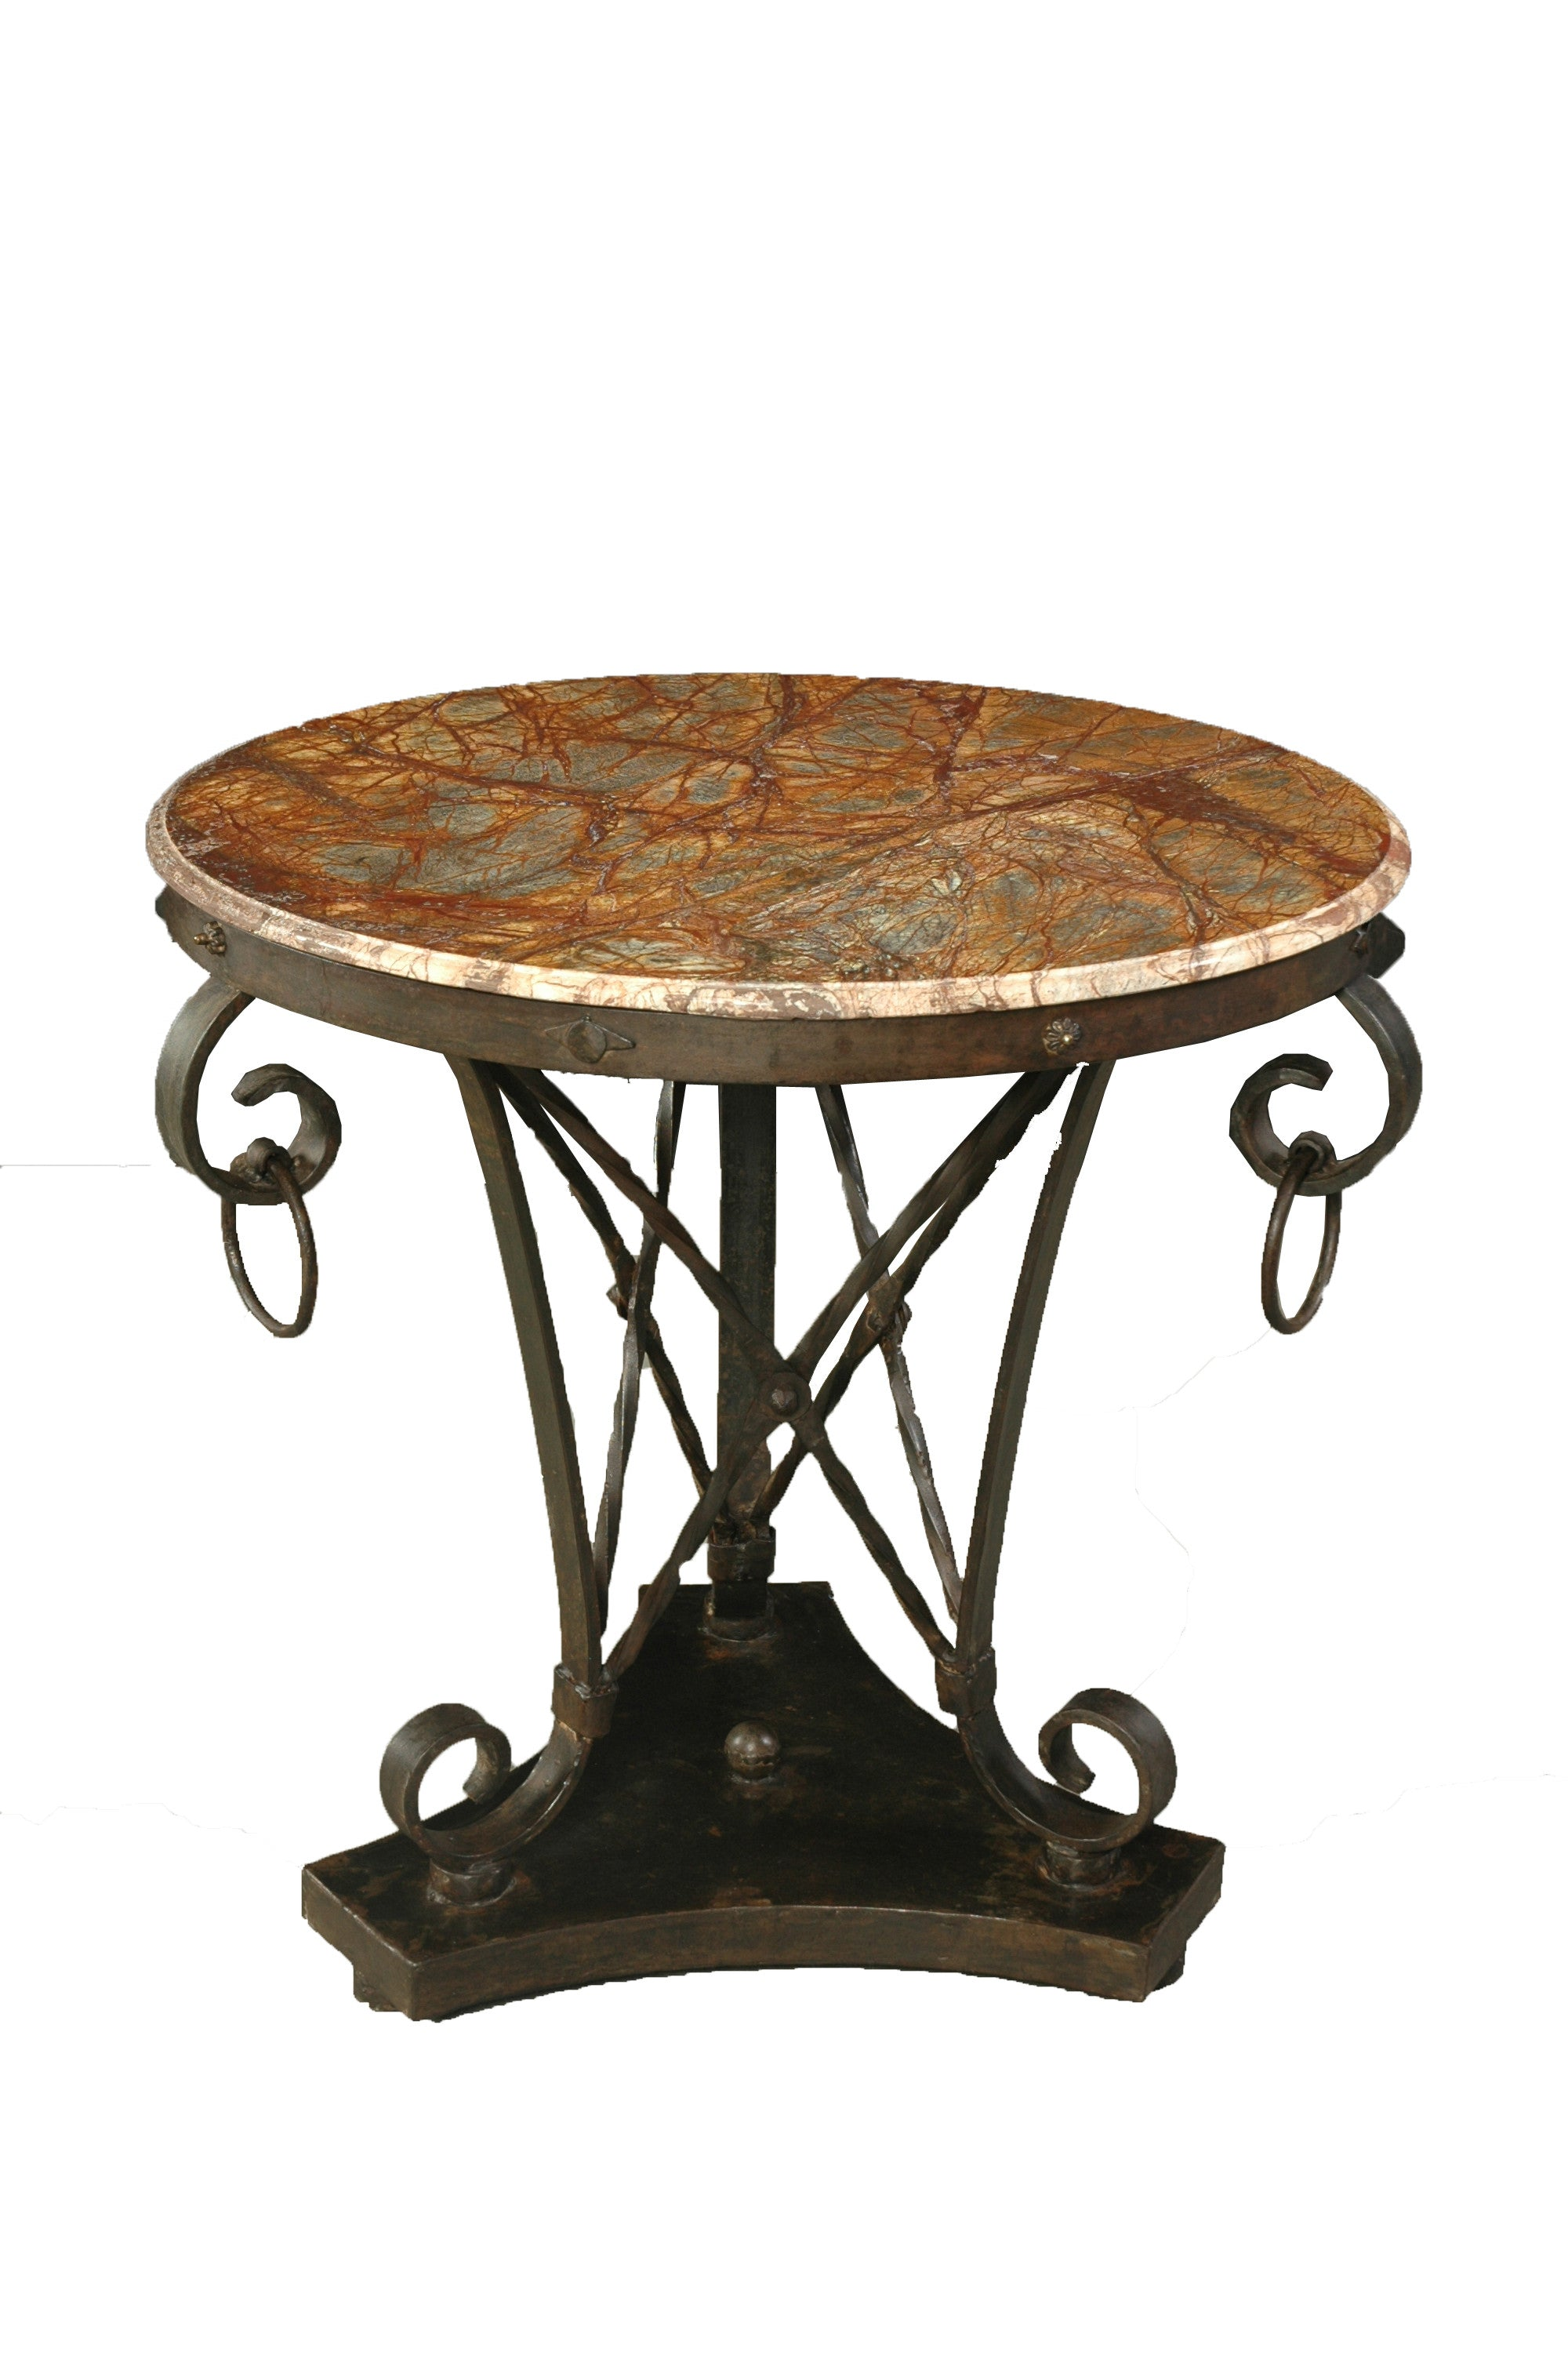 A Round Table with Iron Base